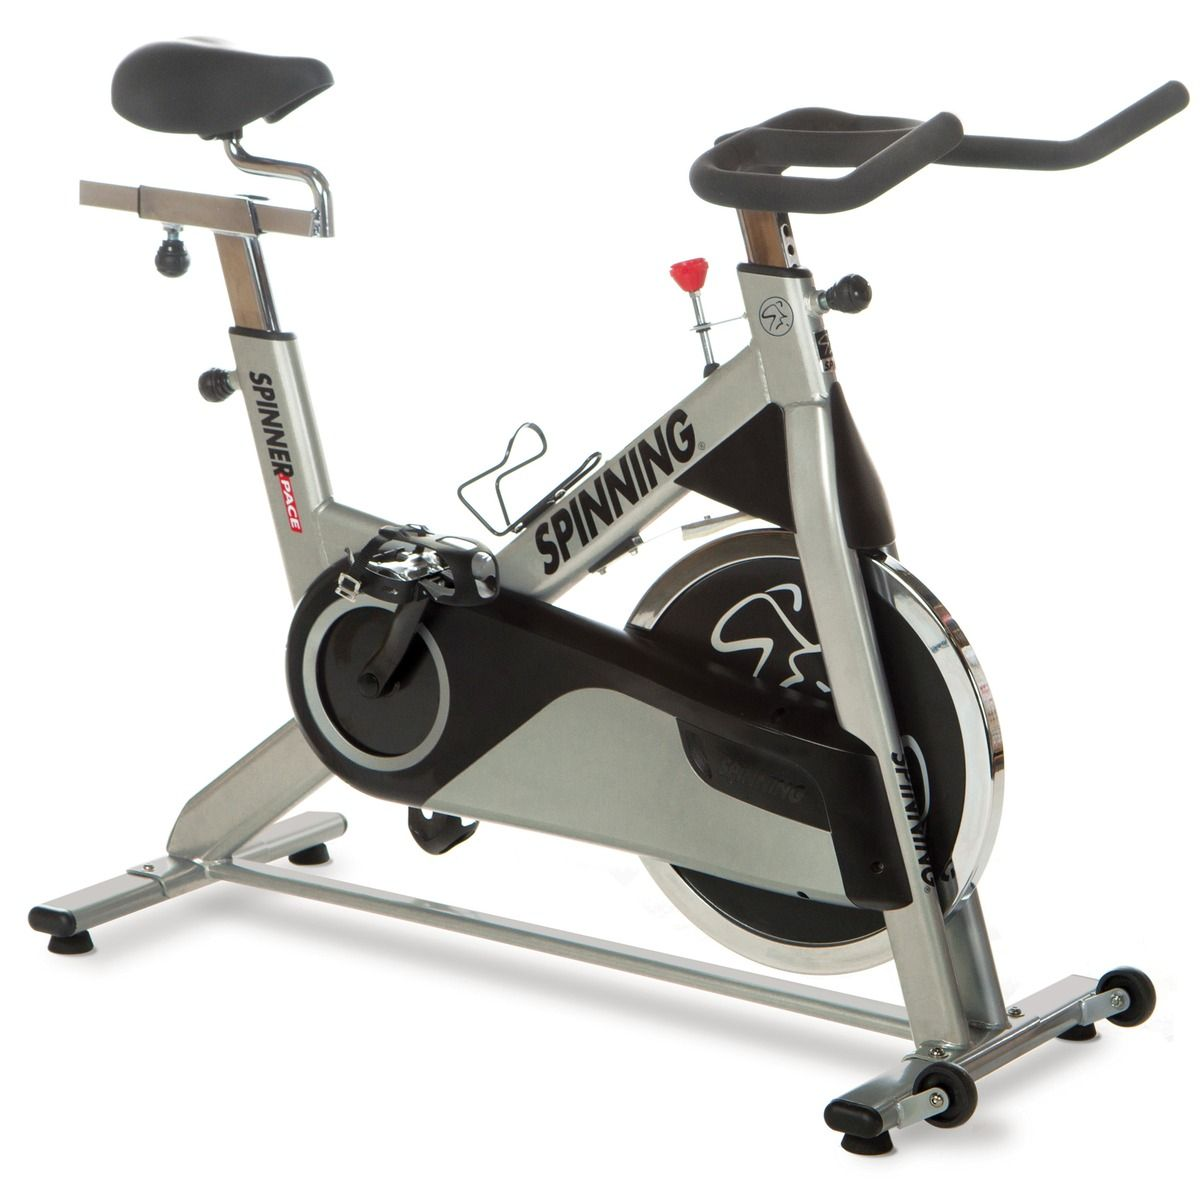 Spinner Pace Exercise Bikes Start Spinning Today With This